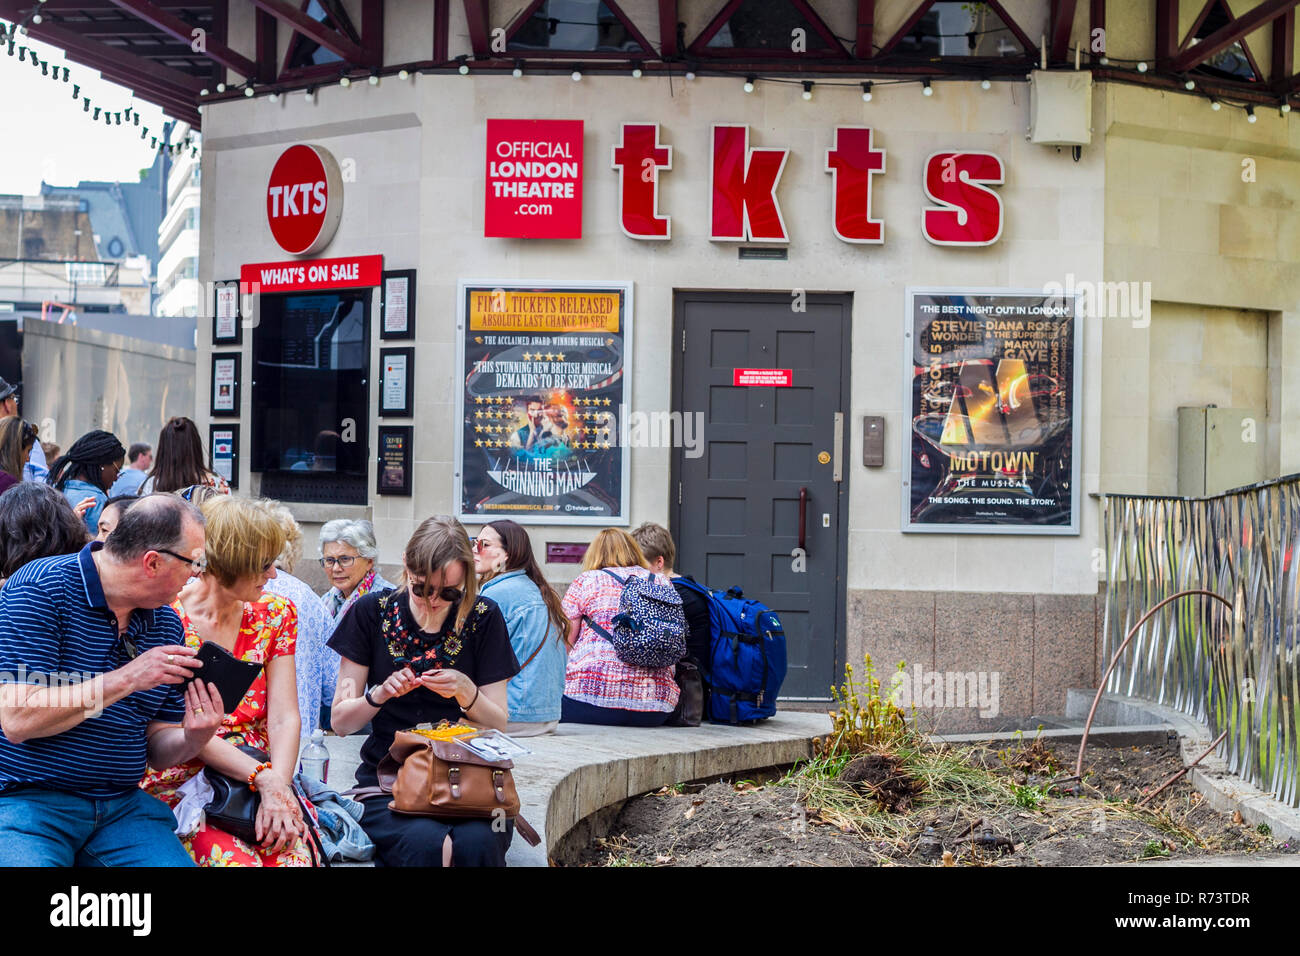 Tkts ticket office, westend show, west end show tickets, shows, Leceister Square, London UK, musicals, musical theatre concept, drama acting, play - Stock Image